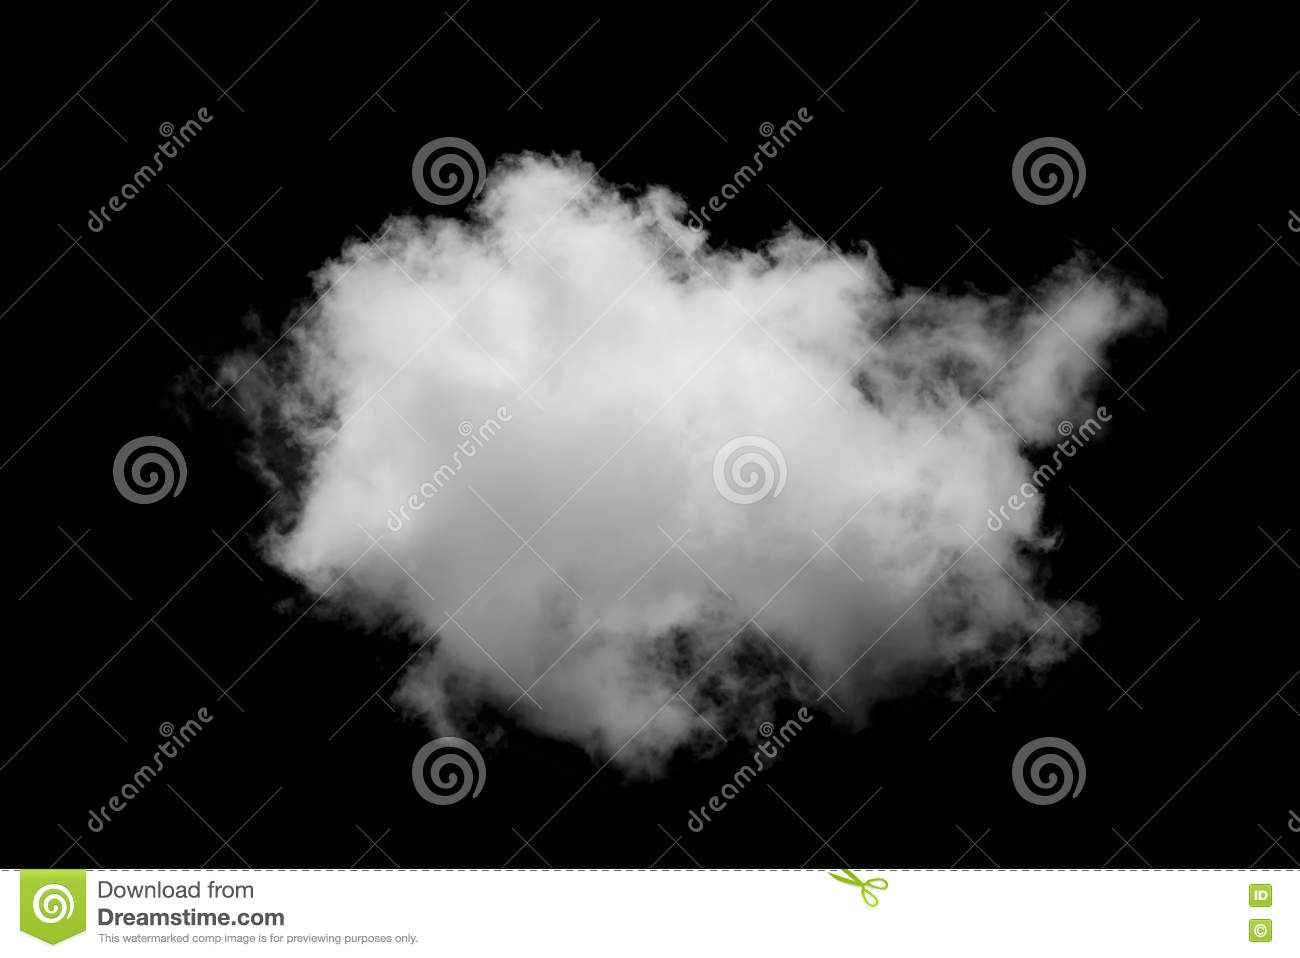 black singles in white cloud Download this beautiful single white cloud isolated over black background photo now and search more of the web's best library of royalty-free stock images from istock.